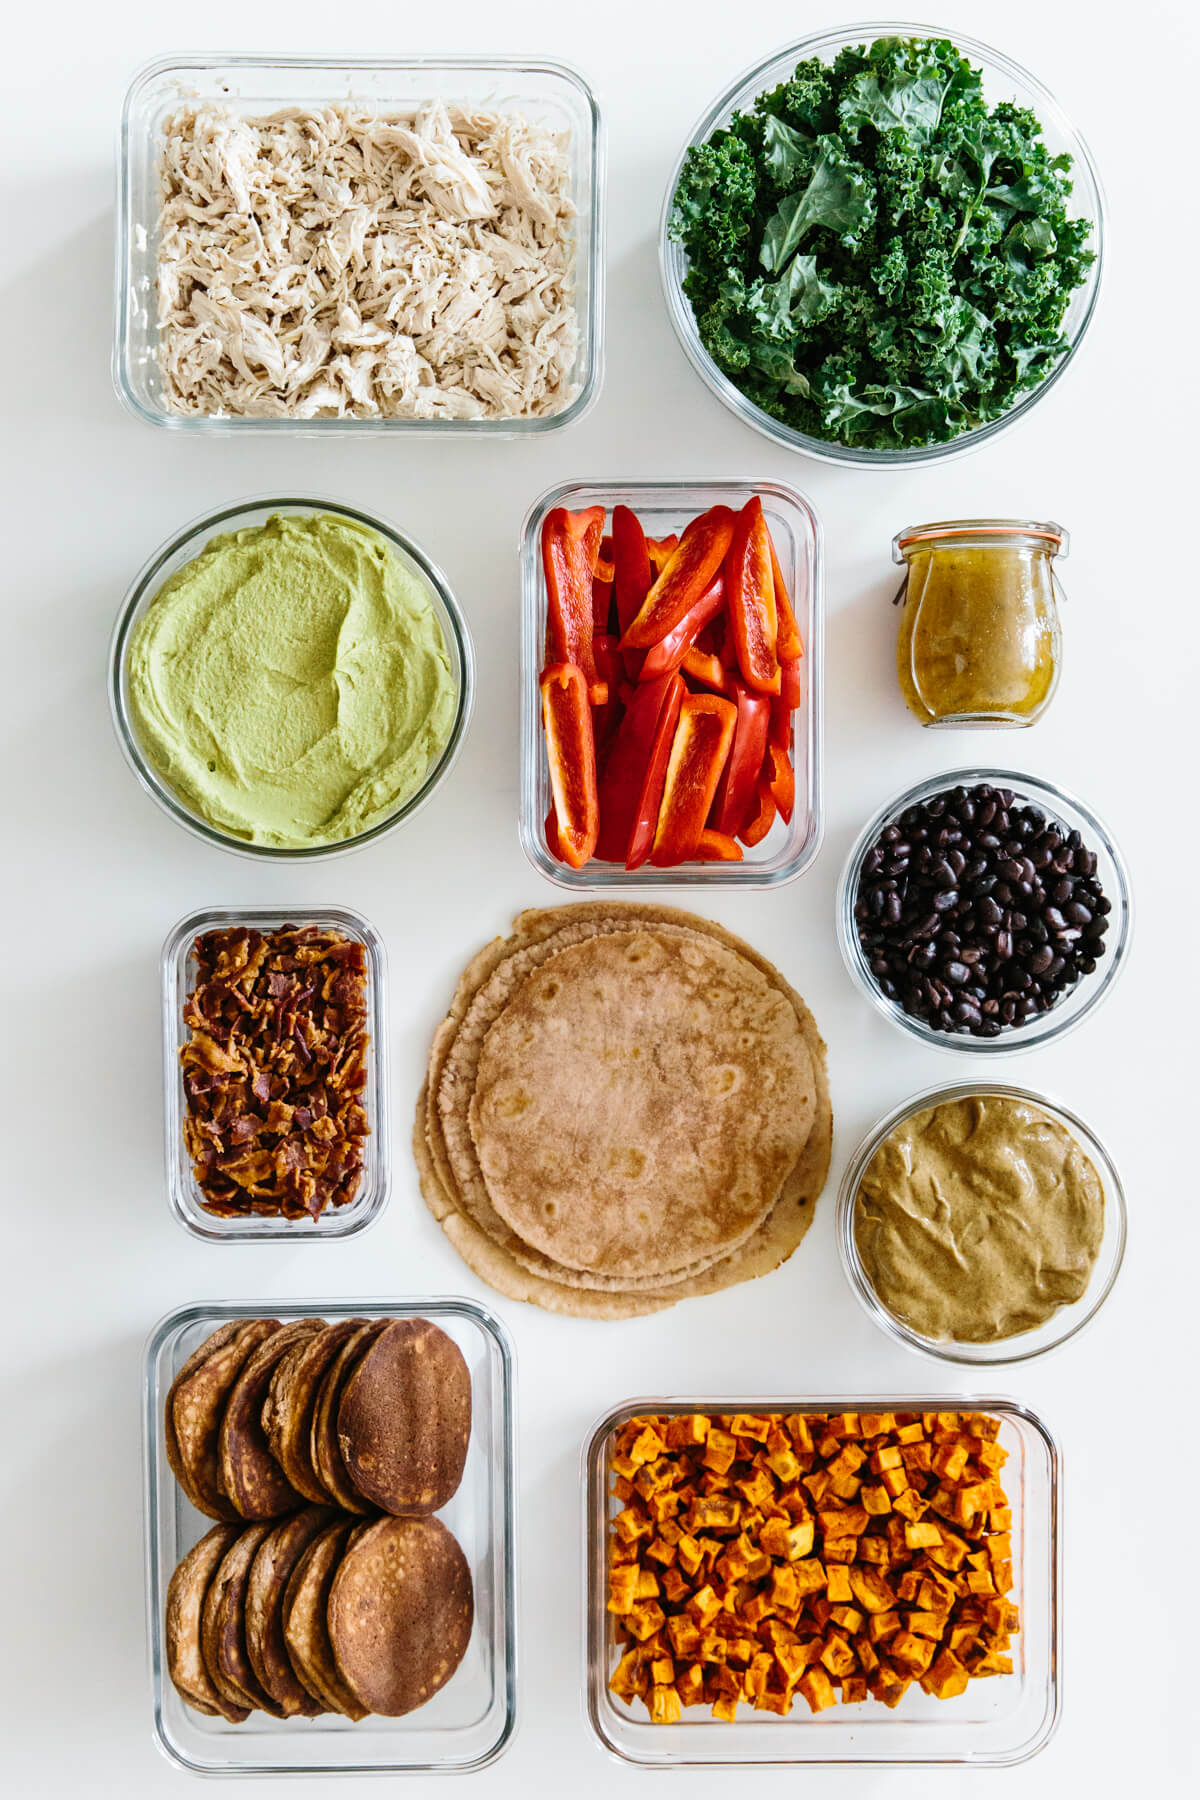 Meal prepped individual ingredients in containers.